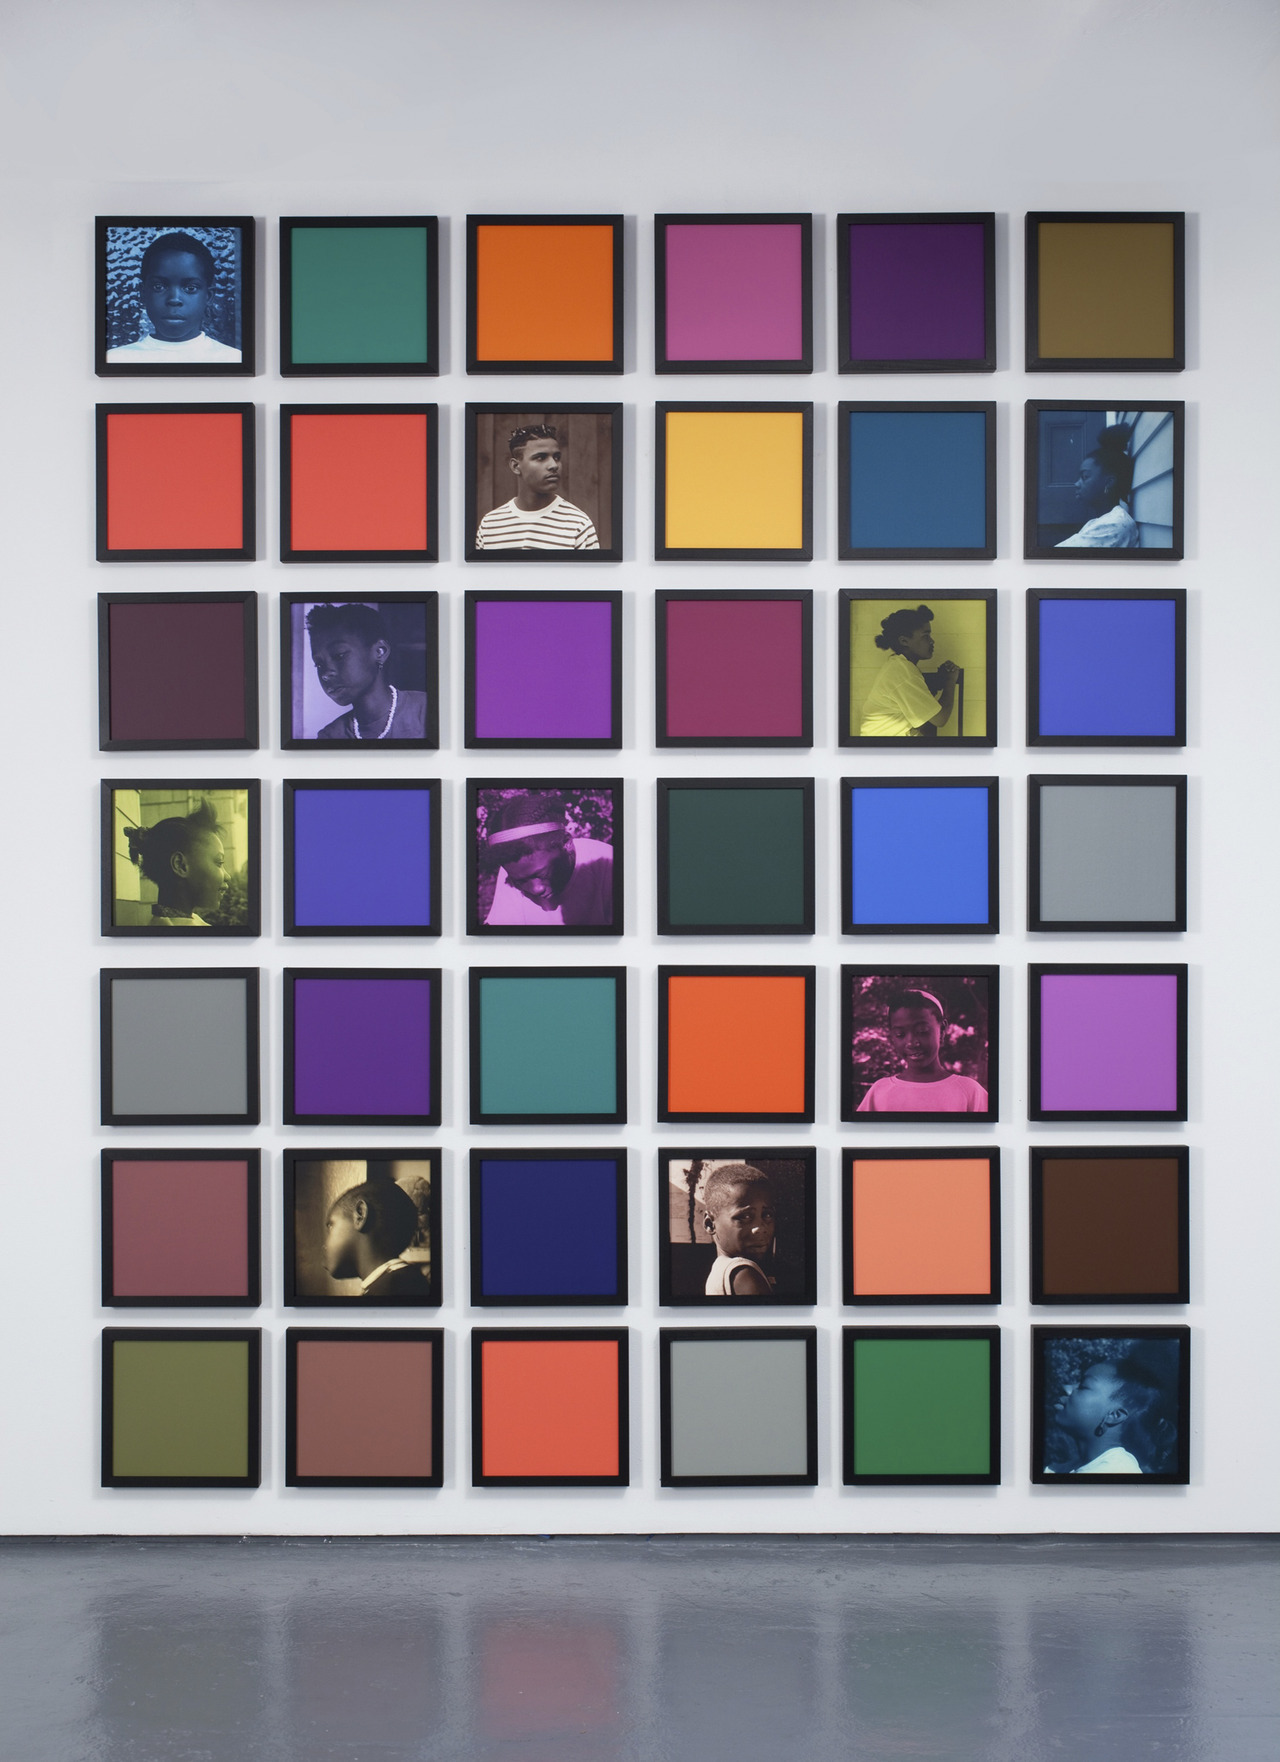 Carrie Mae Weems, Untitled (Colored People Grid), 2009–10. Courtesy of the artist and Jack Shainman Gallery, New York. Copyright Carrie Mae Weems.